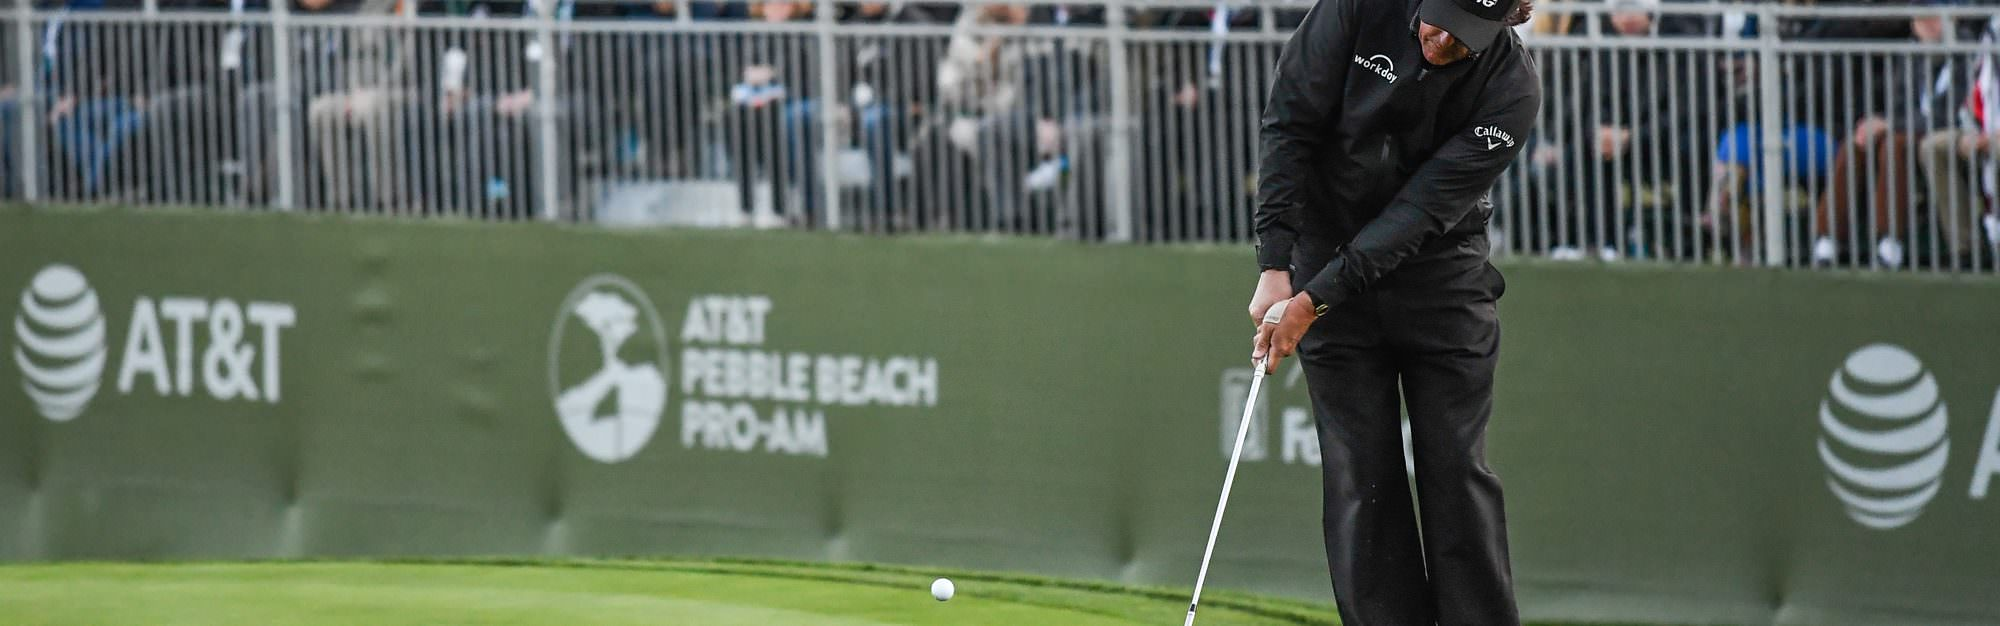 Try this tip from Phil next time you need to chip out of rough